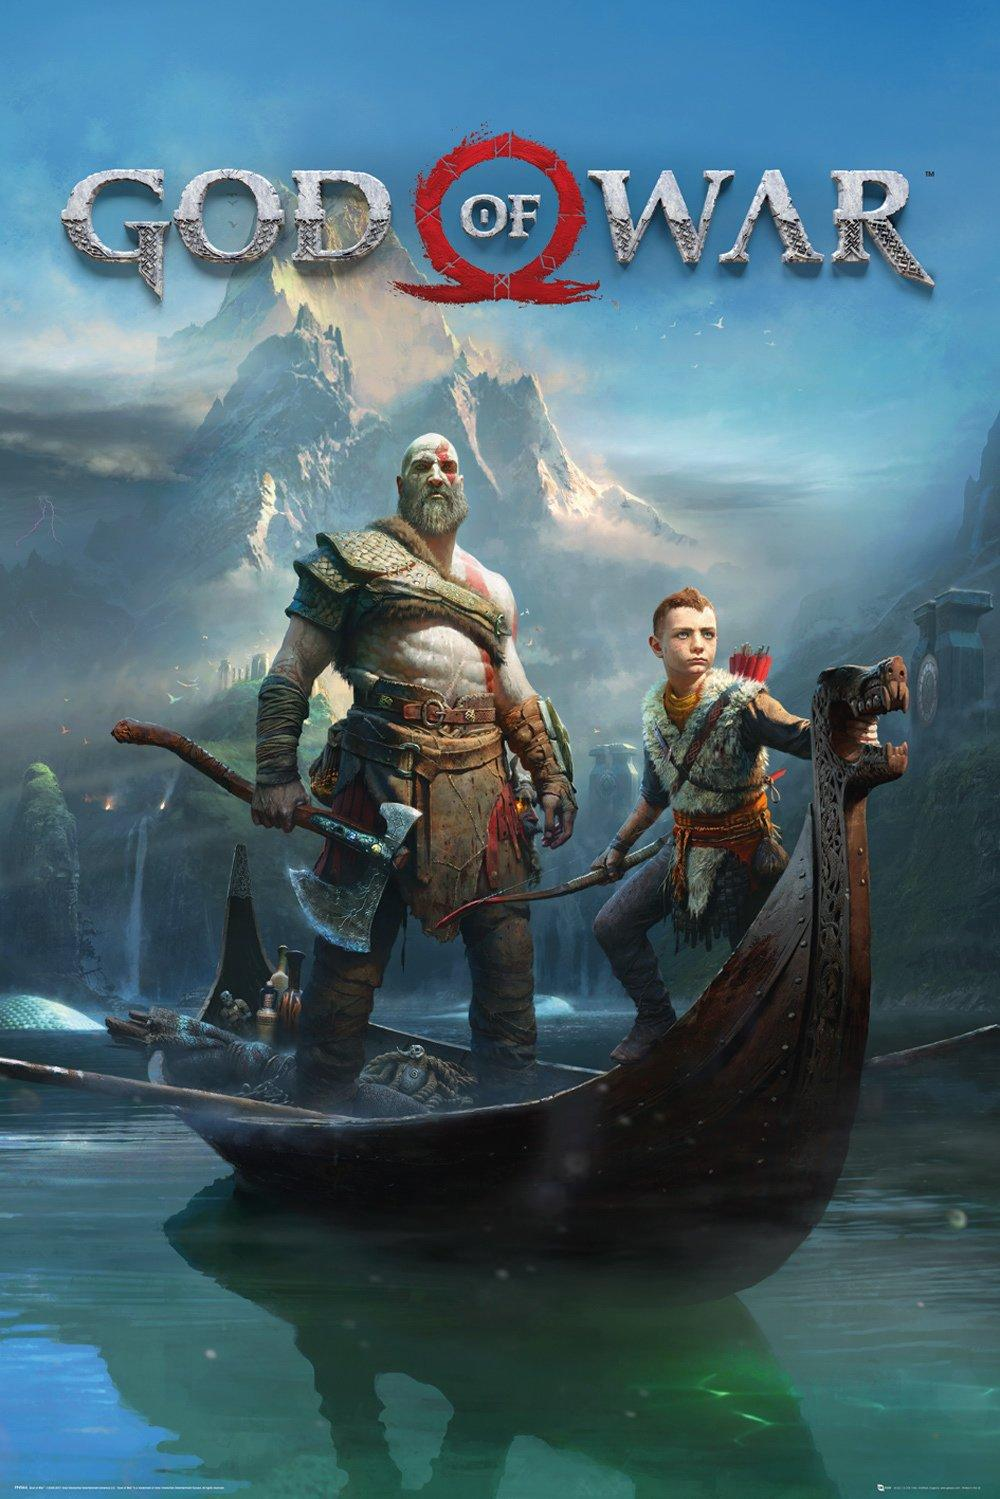 GOD OF WAR - Poster 61X91 - Key Art